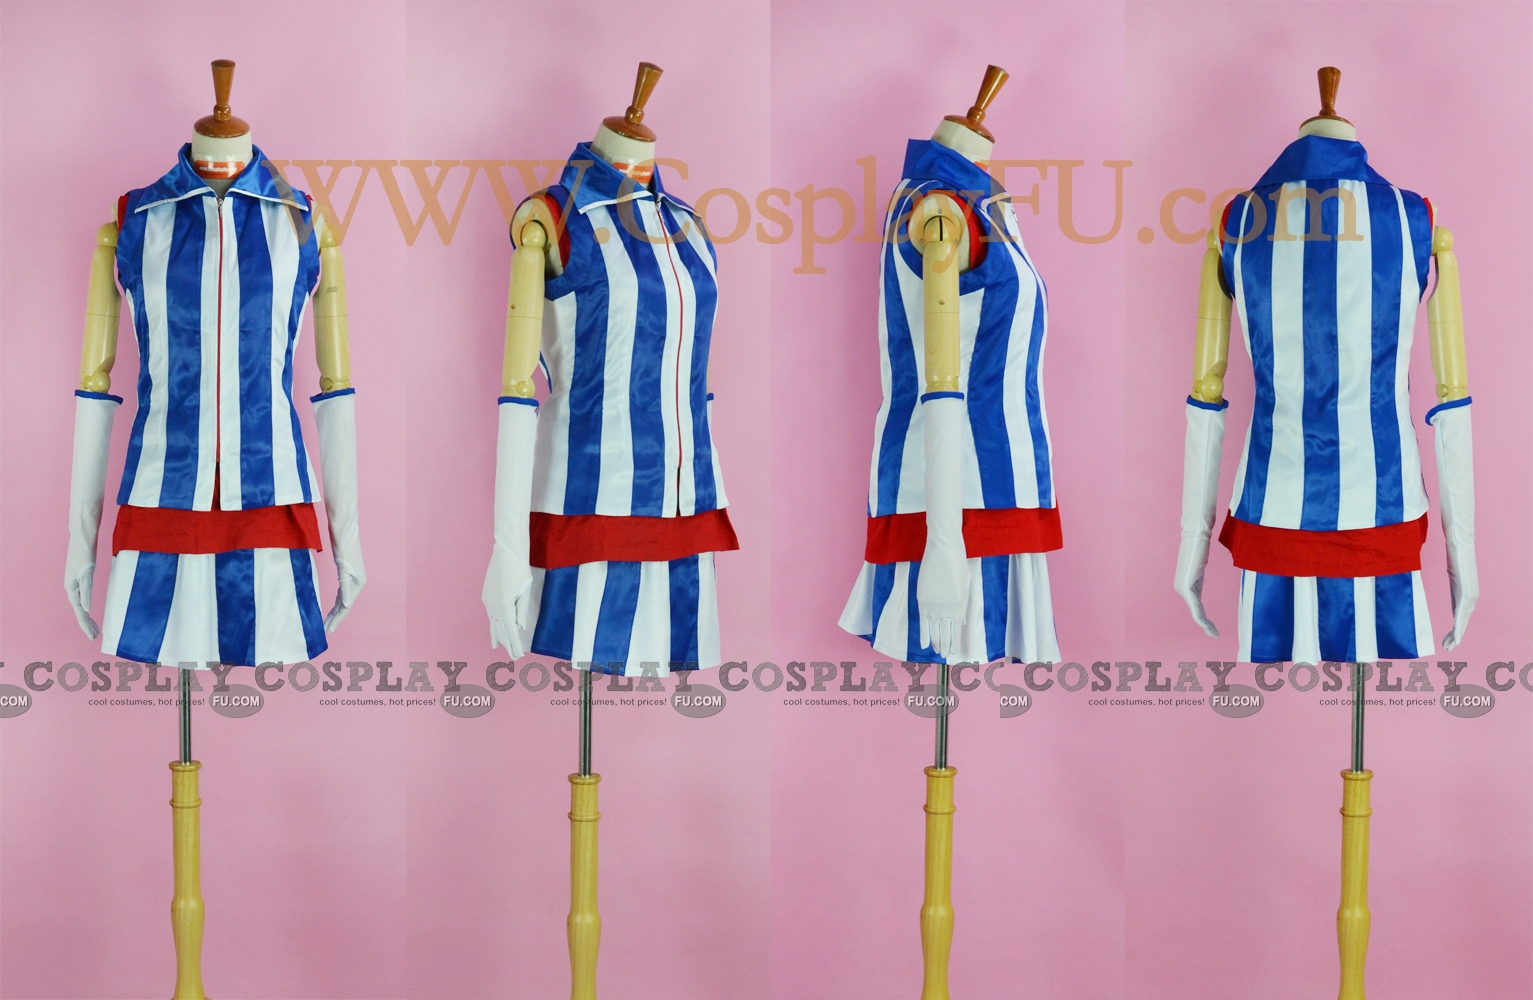 Akikoroid Chan Cosplay Costume from Vocaloid 3